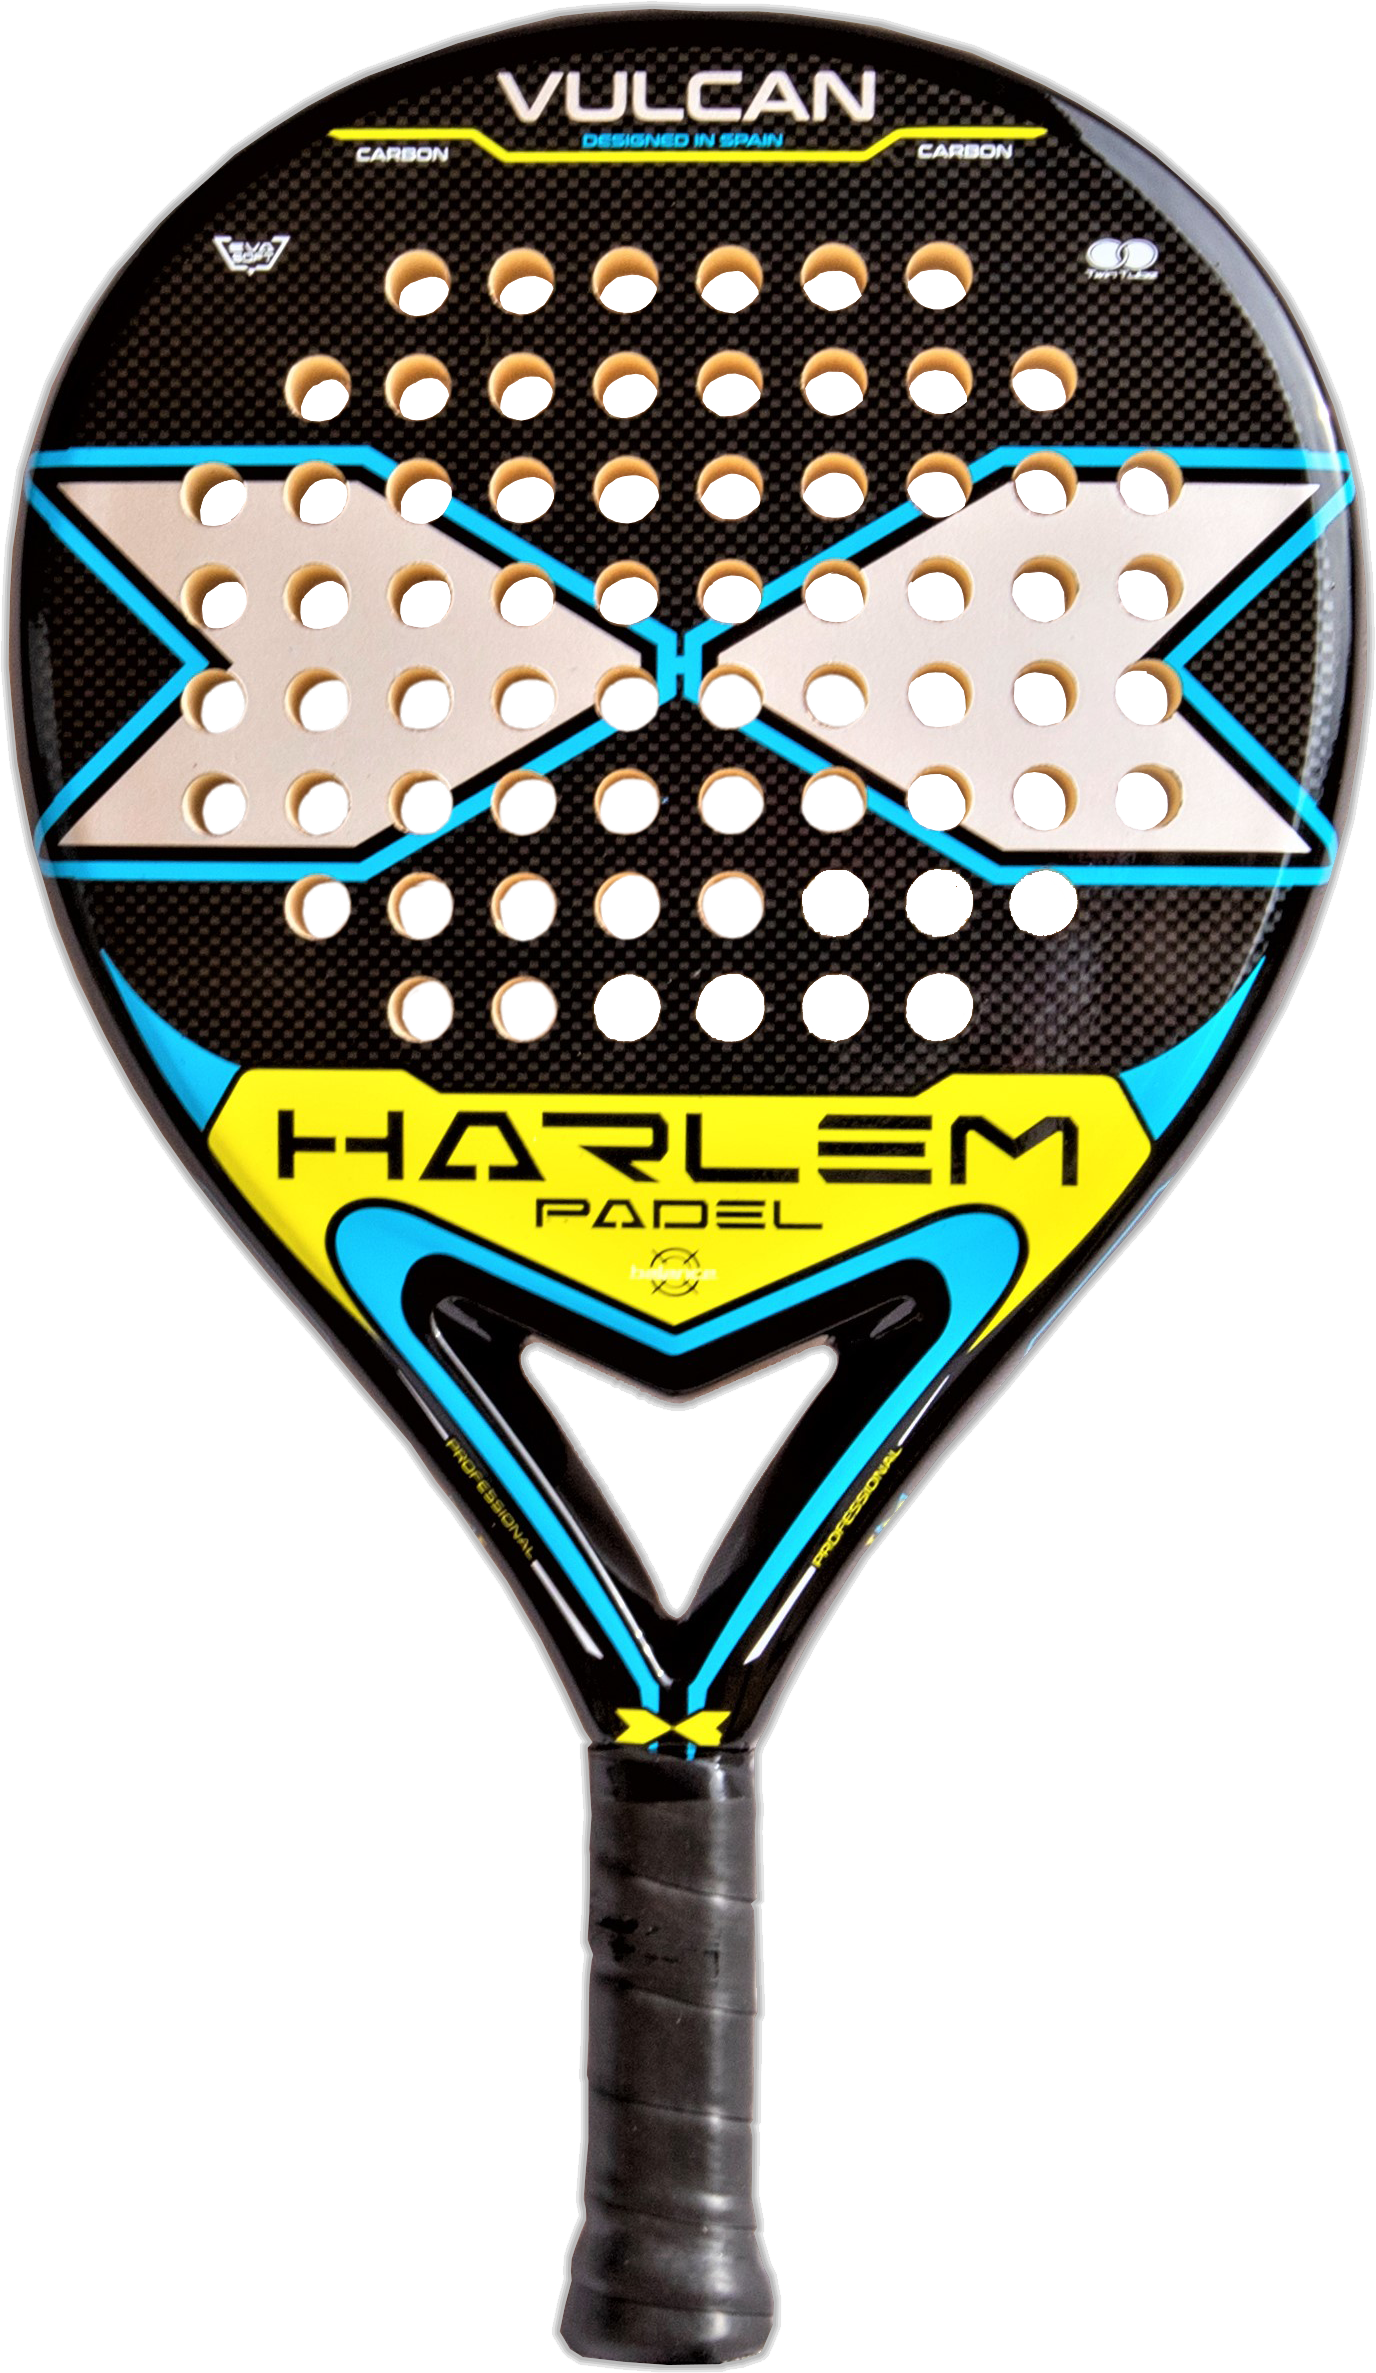 https://www.harlempadel.com/modules/iqithtmlandbanners/uploads/images/6004c1daabba2.jpg